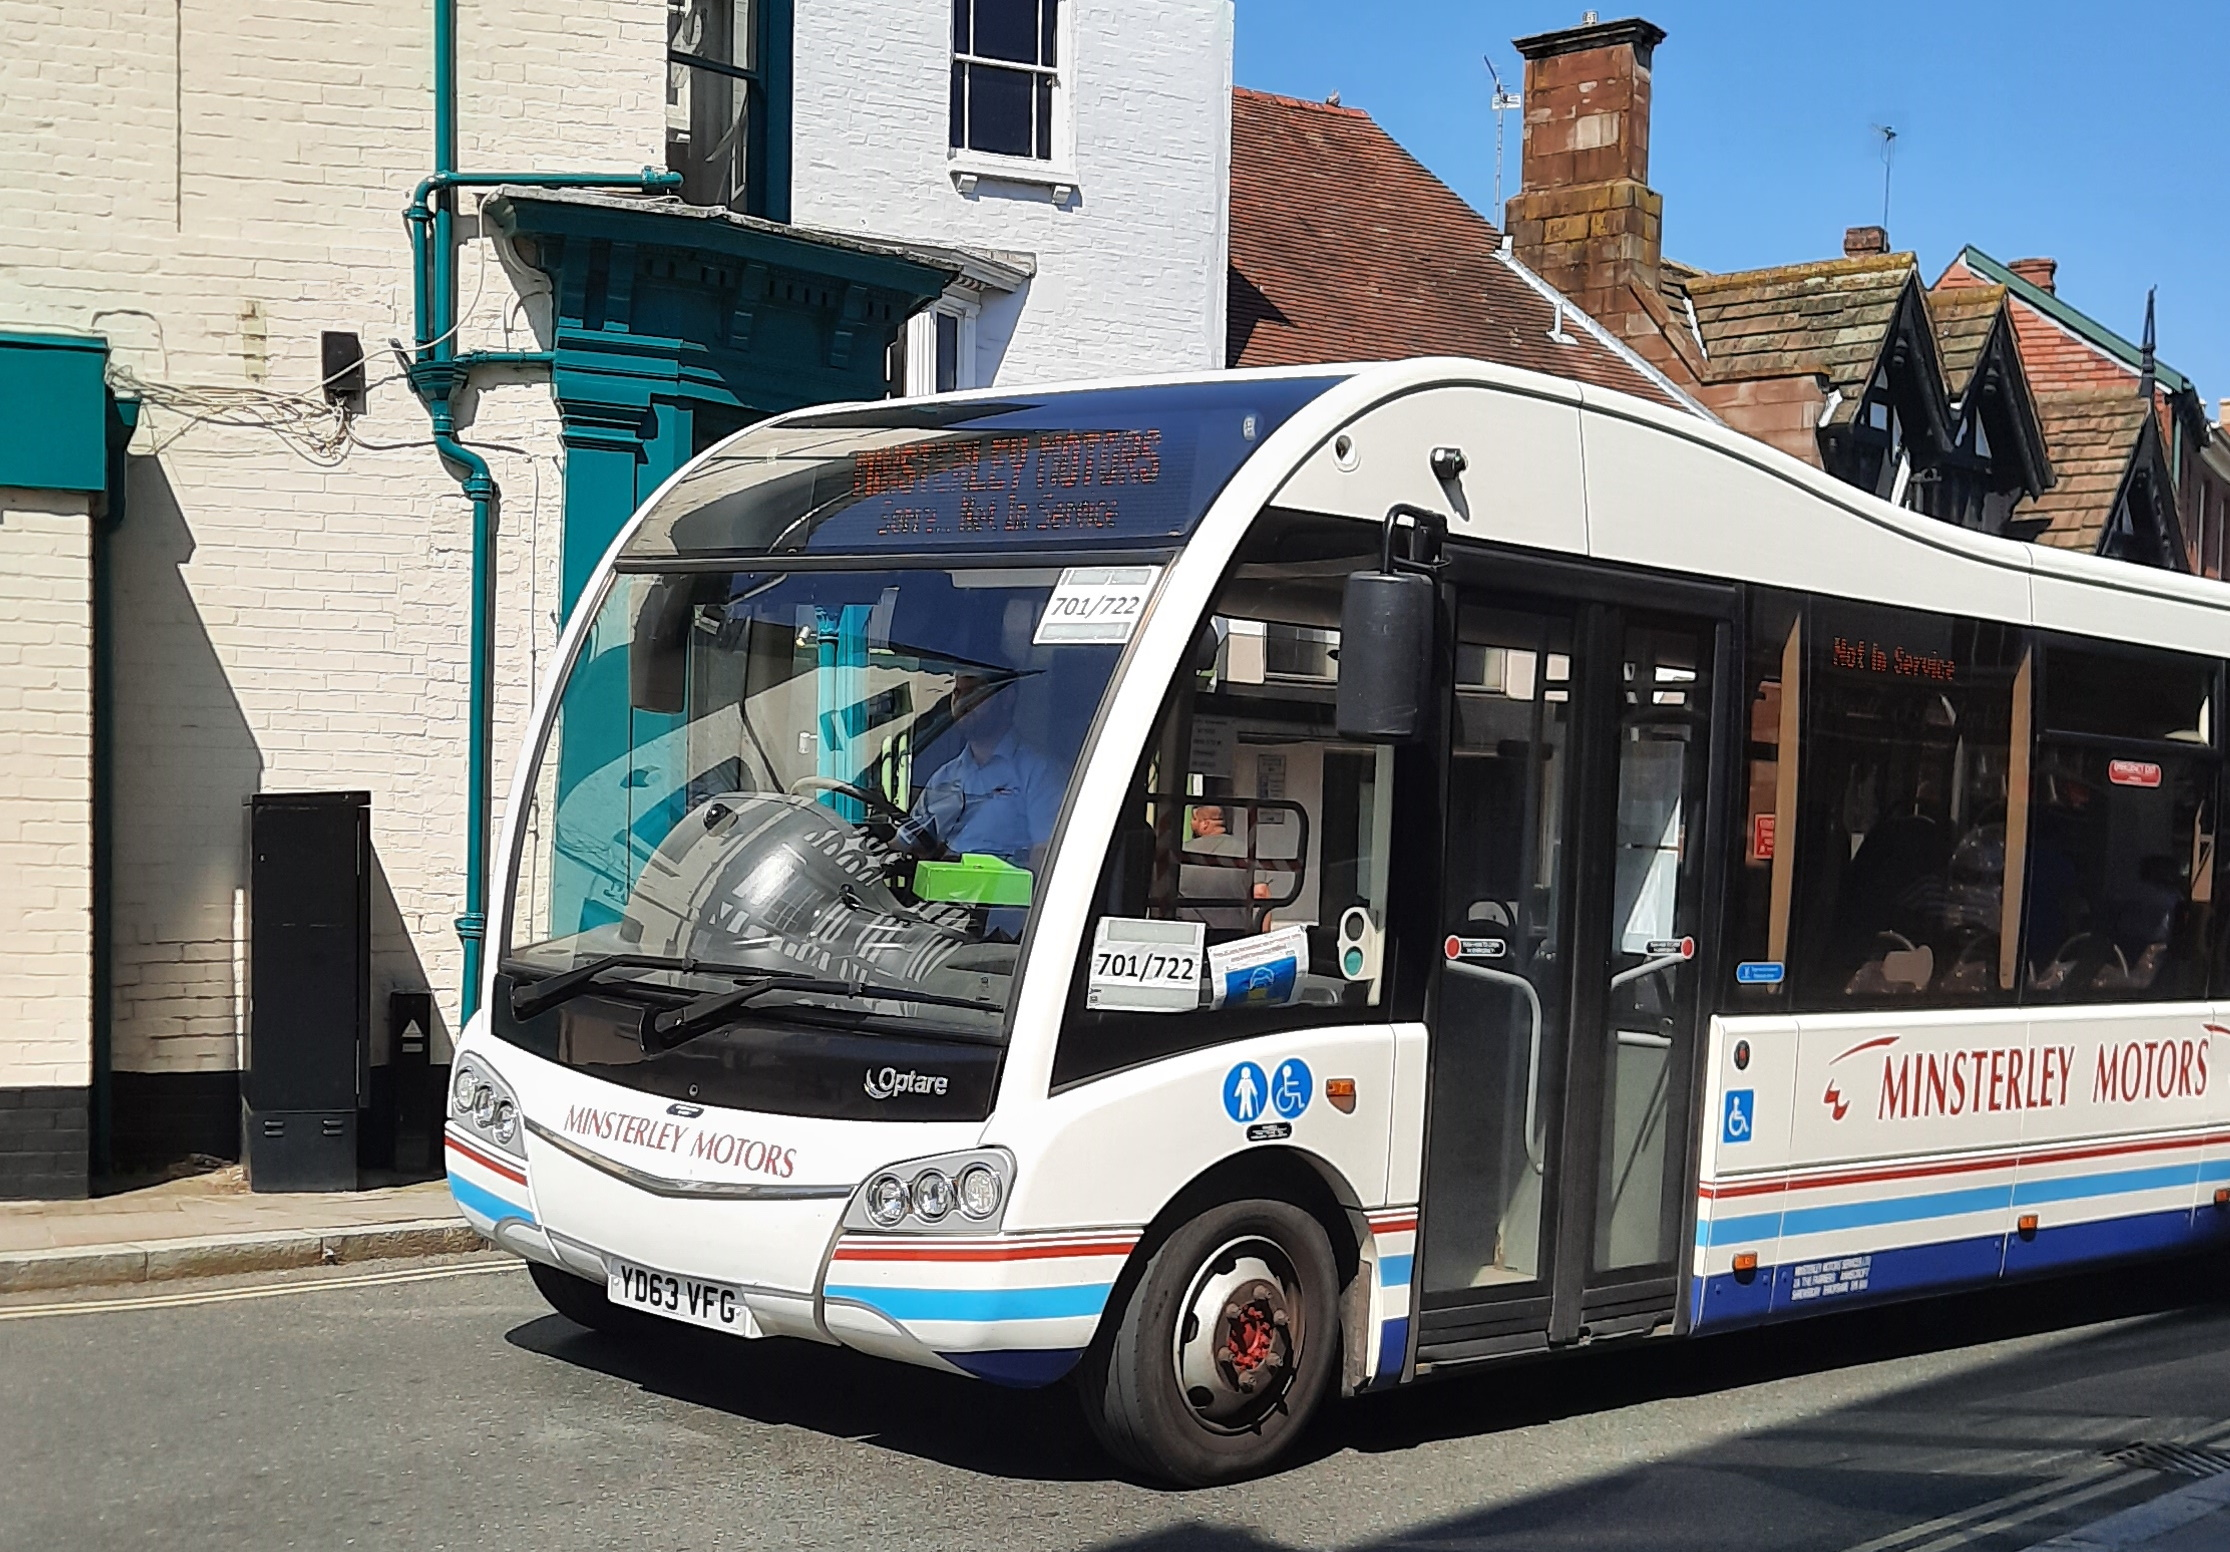 Covid Watch 70: Good news for Ludlow with increased bus services and park and ride on Friday and Saturdays during August